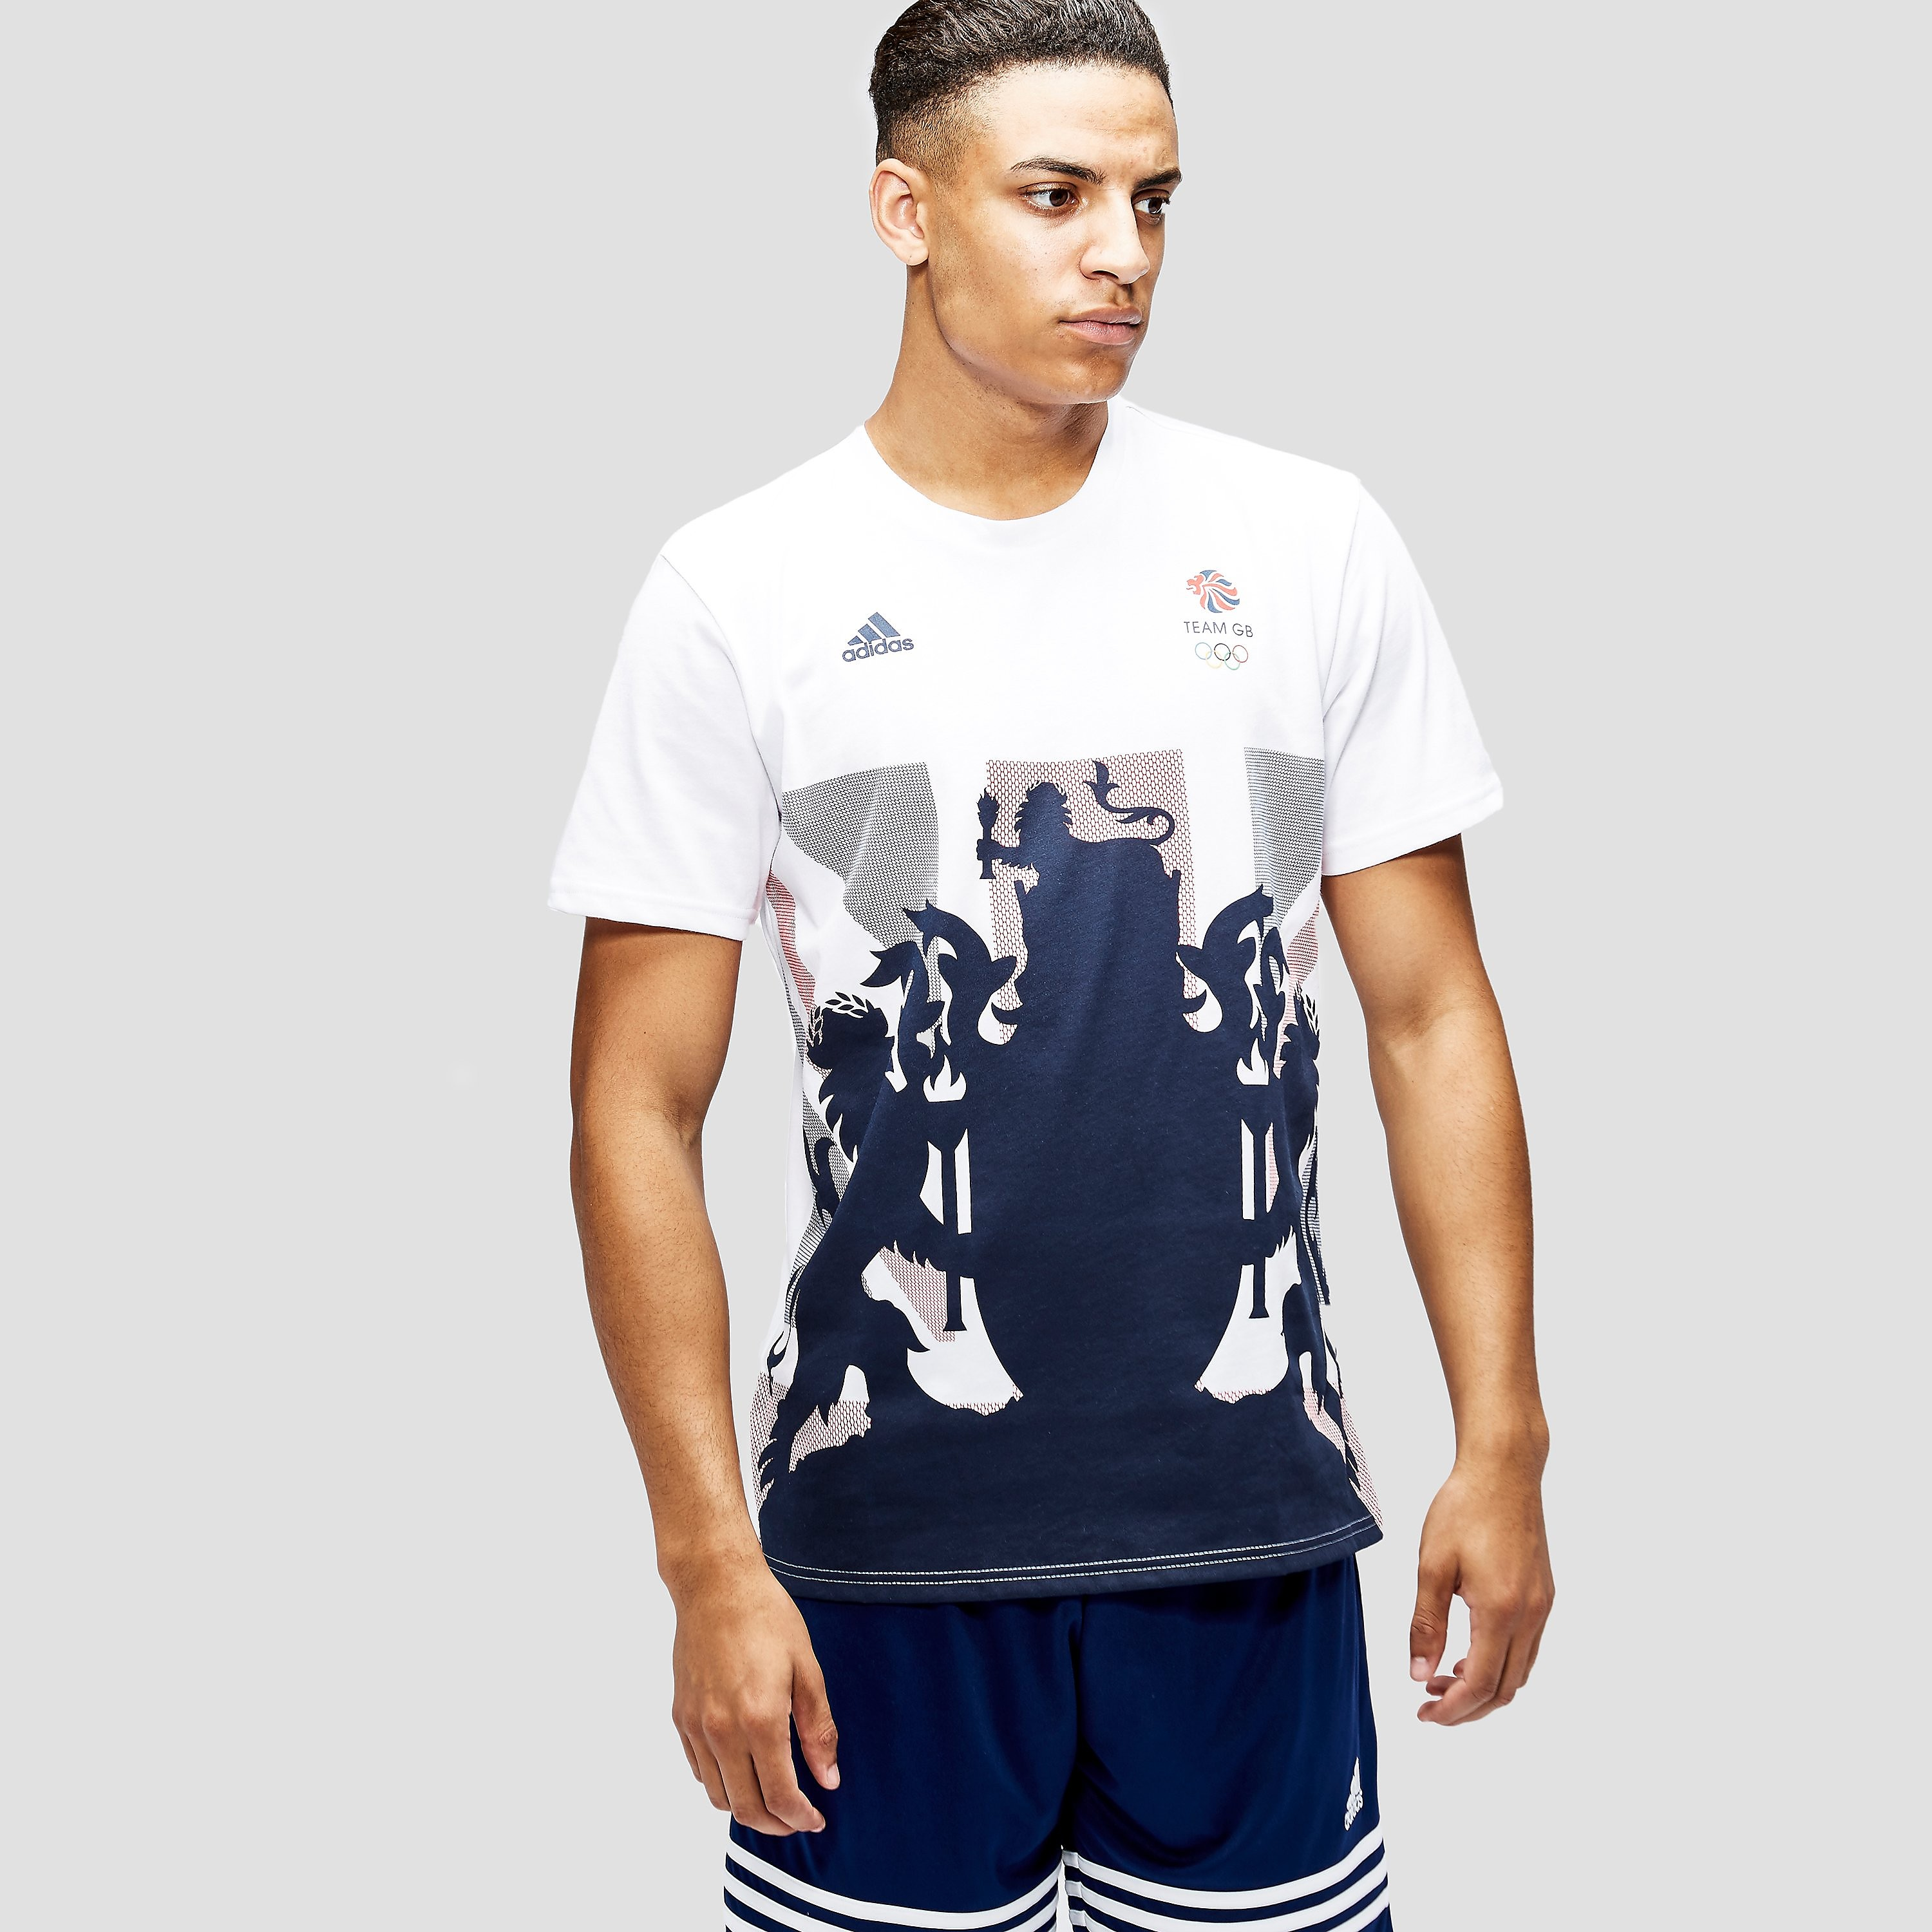 adidas Team GB OSP Men's T-Shirt